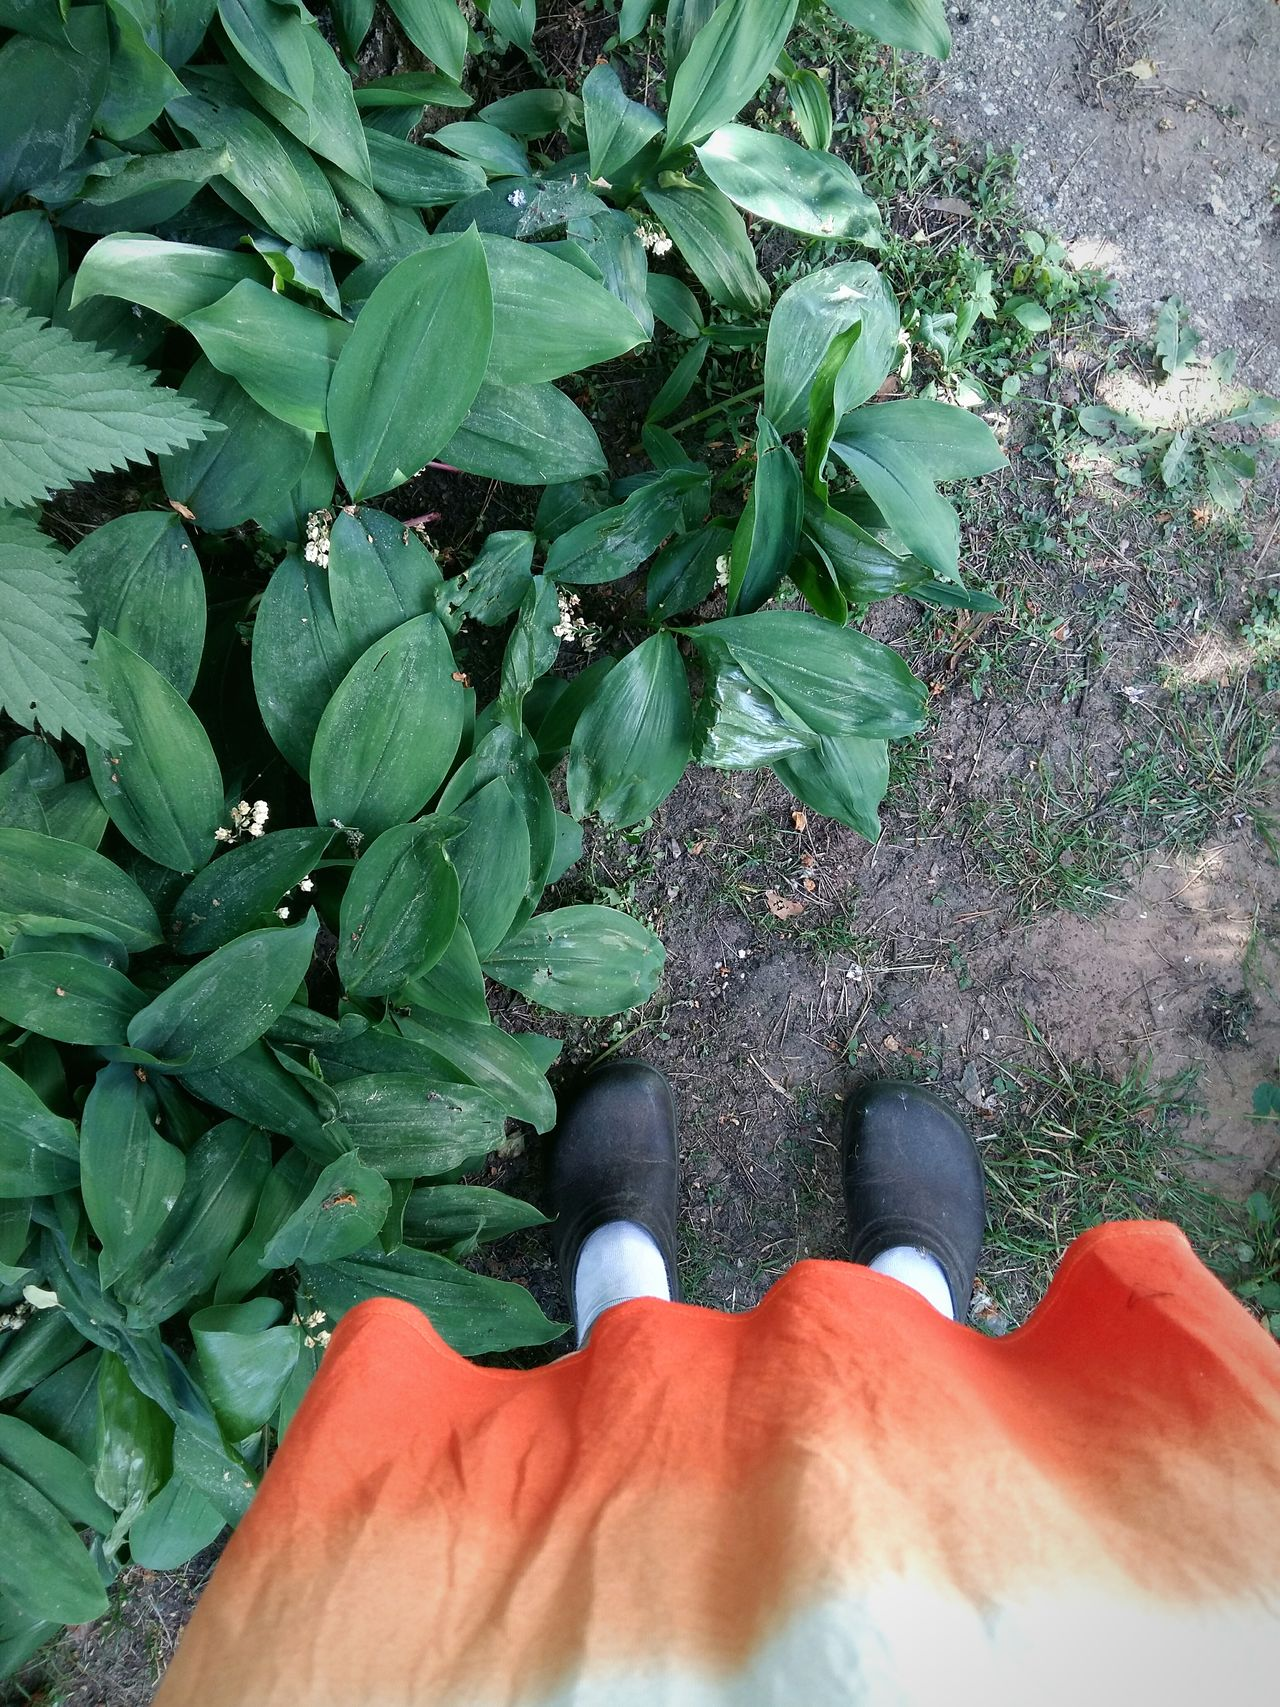 Low Section Real People Green Color One Person High Angle View Growth Leaf Lifestyles Human Leg Outdoors Nature Close-up Day Freshness Beauty In Nature Human Body Part Adult Garden Shoes Foot Selfie Flat Lays Gardening Spring Women Around The World EyeEmNewHere